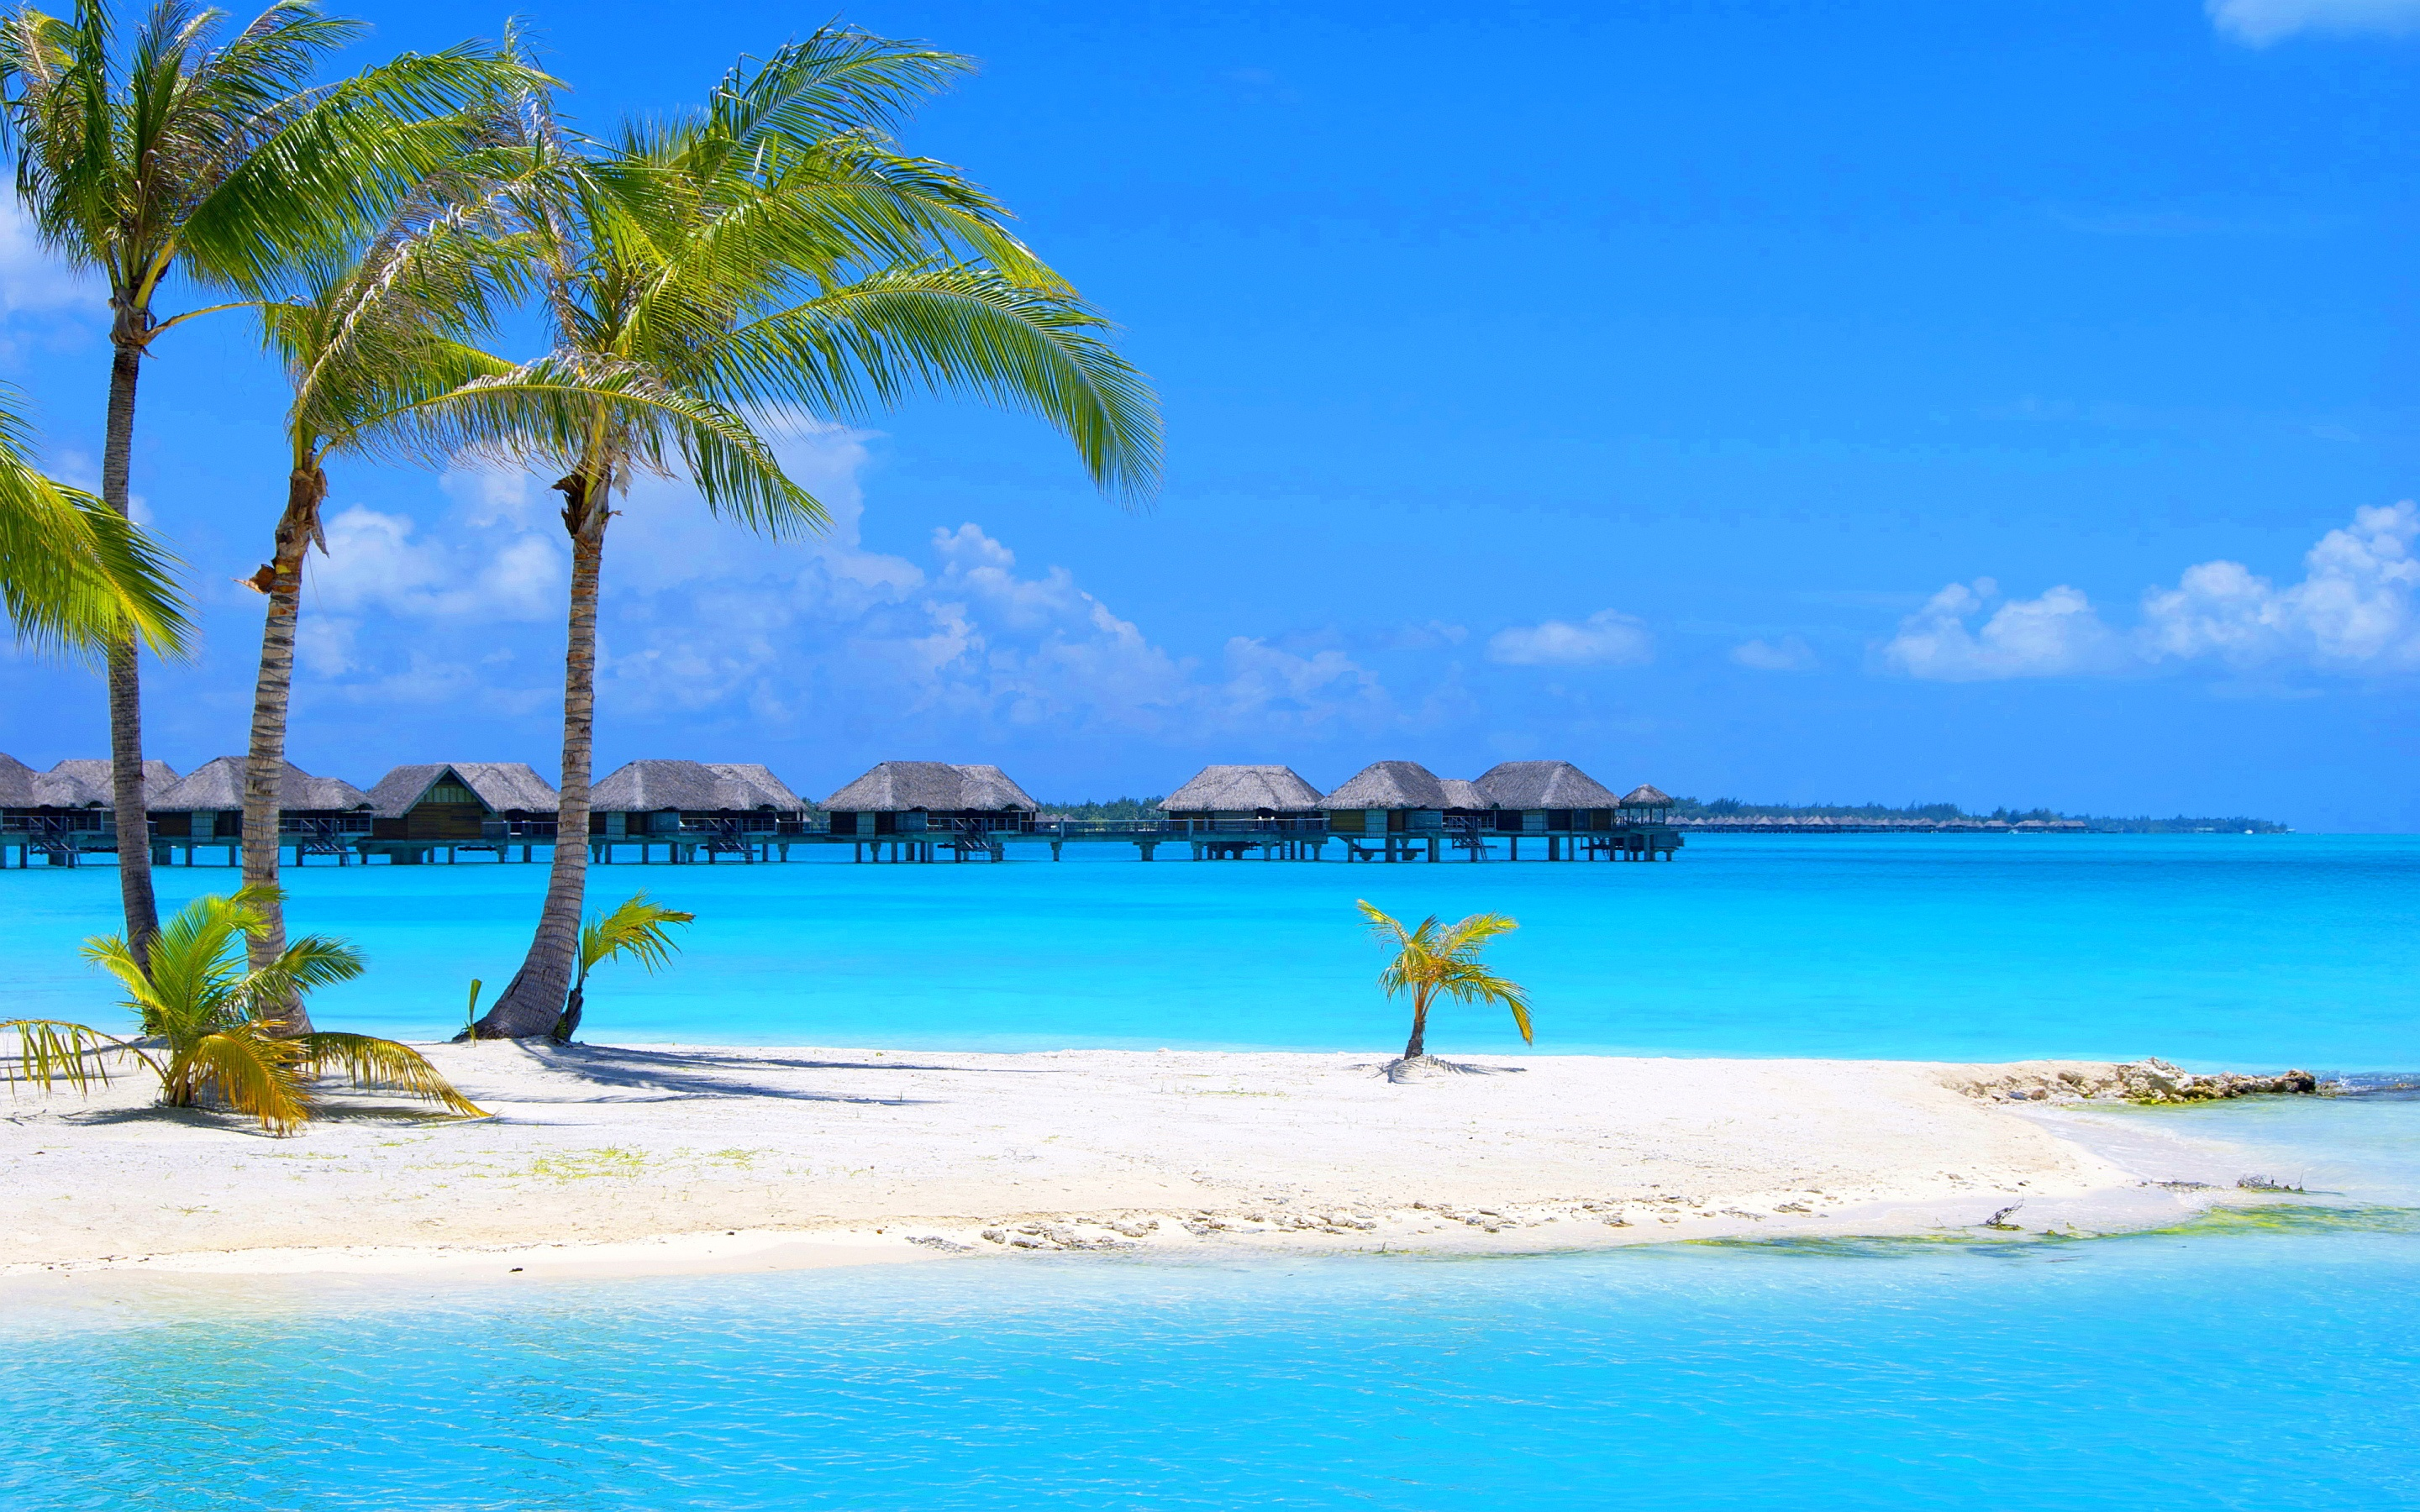 10 Best Tropical Beach Desktop Backgrounds Full Hd 1920: High Resolution Beach Scene Wallpaper